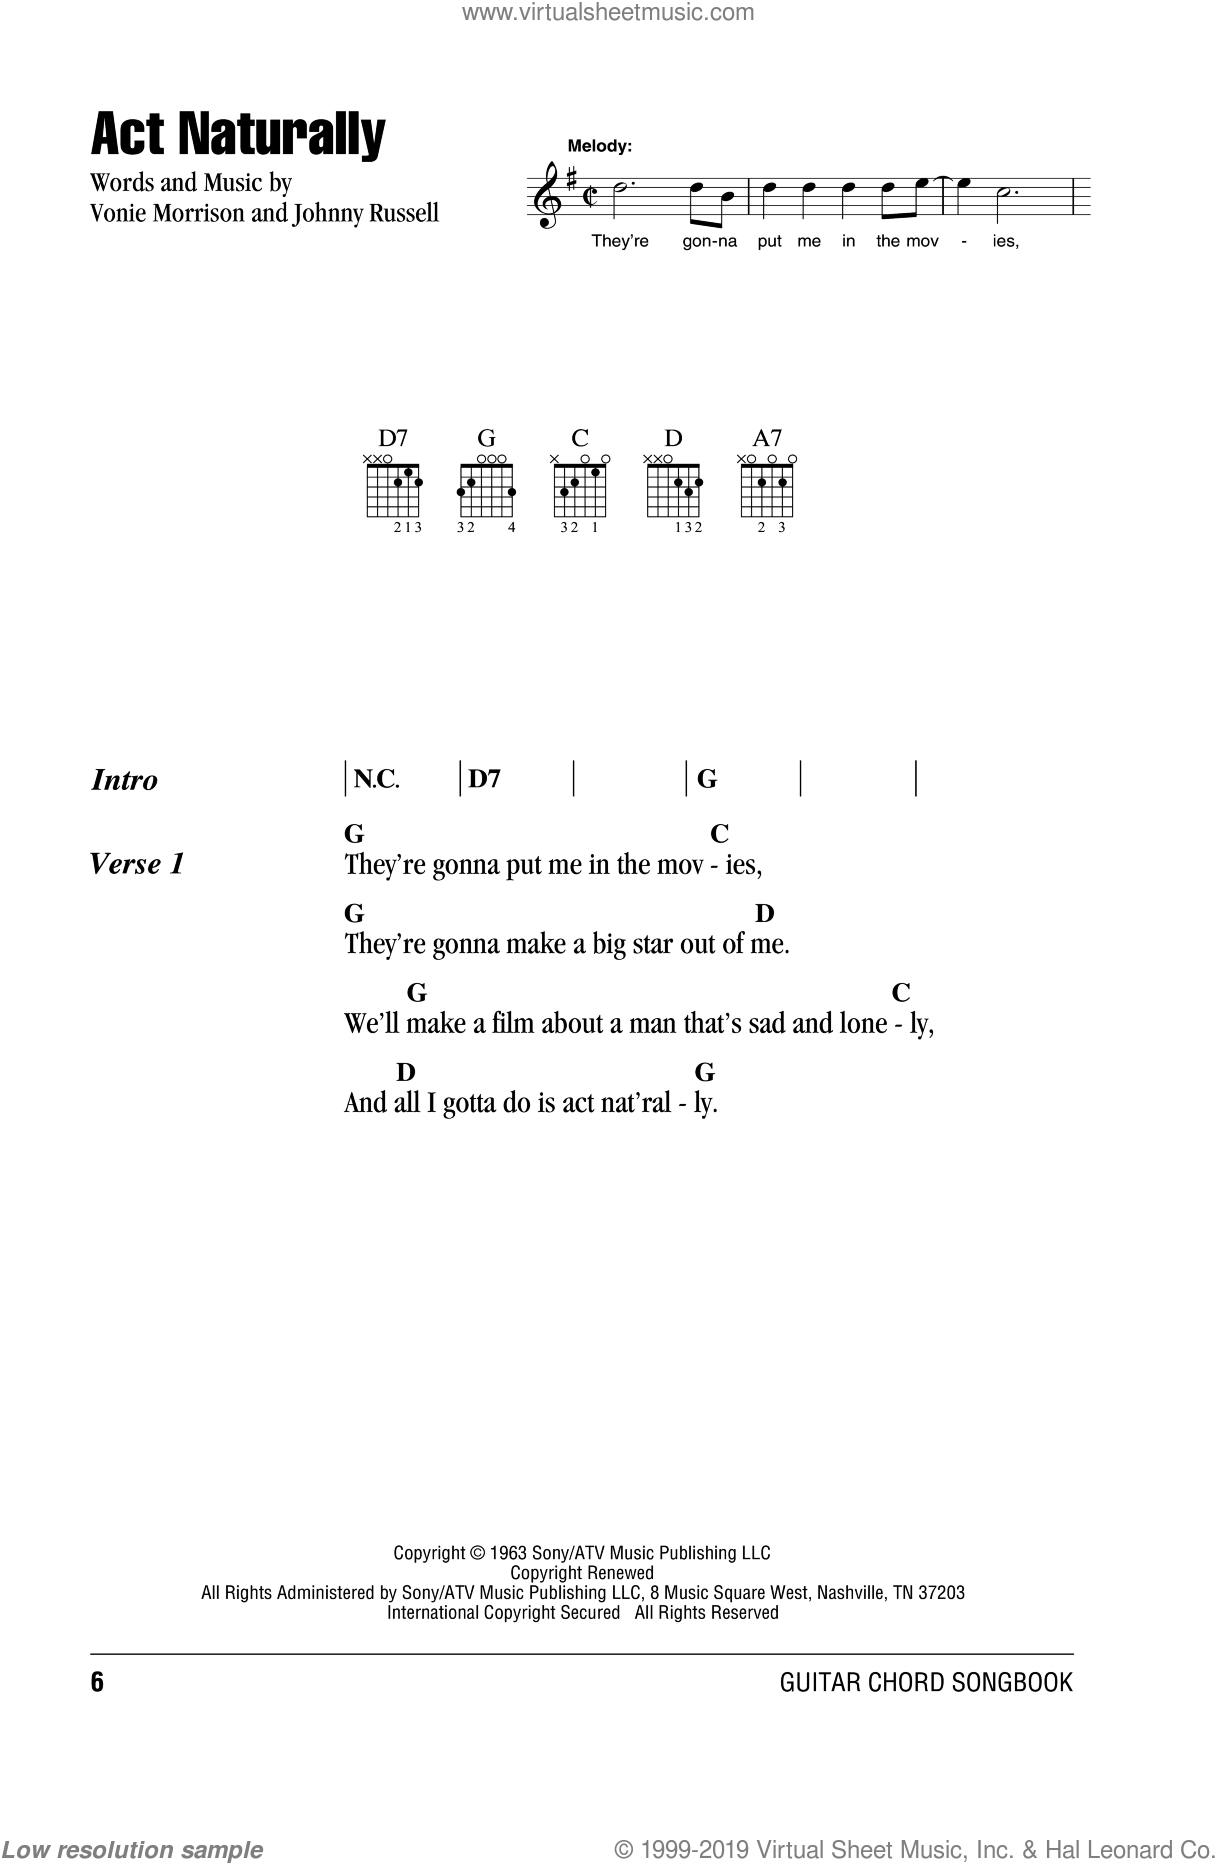 Act Naturally sheet music for guitar (chords) by Vonie Morrison, Buck Owens and The Beatles